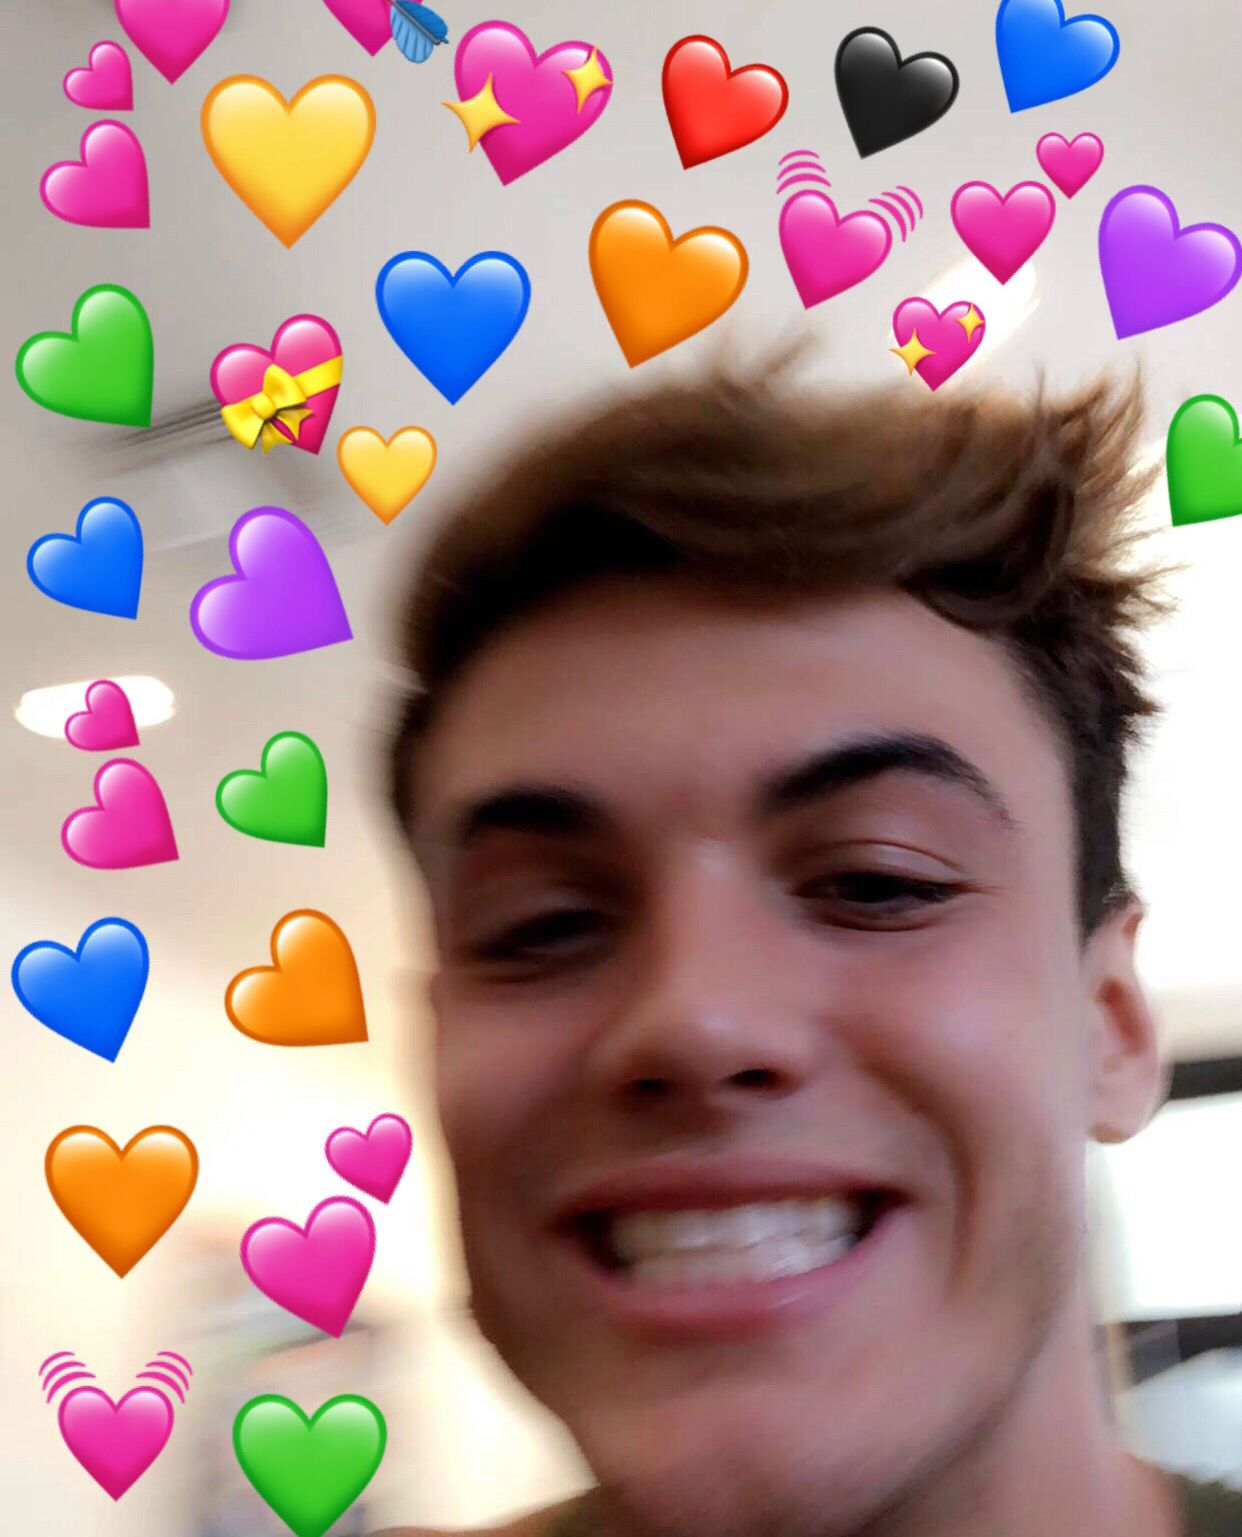 Wholesome Quote Wallpaper Pin By Paula On Memes Of Dolan Twins Dollan Twins Dolan